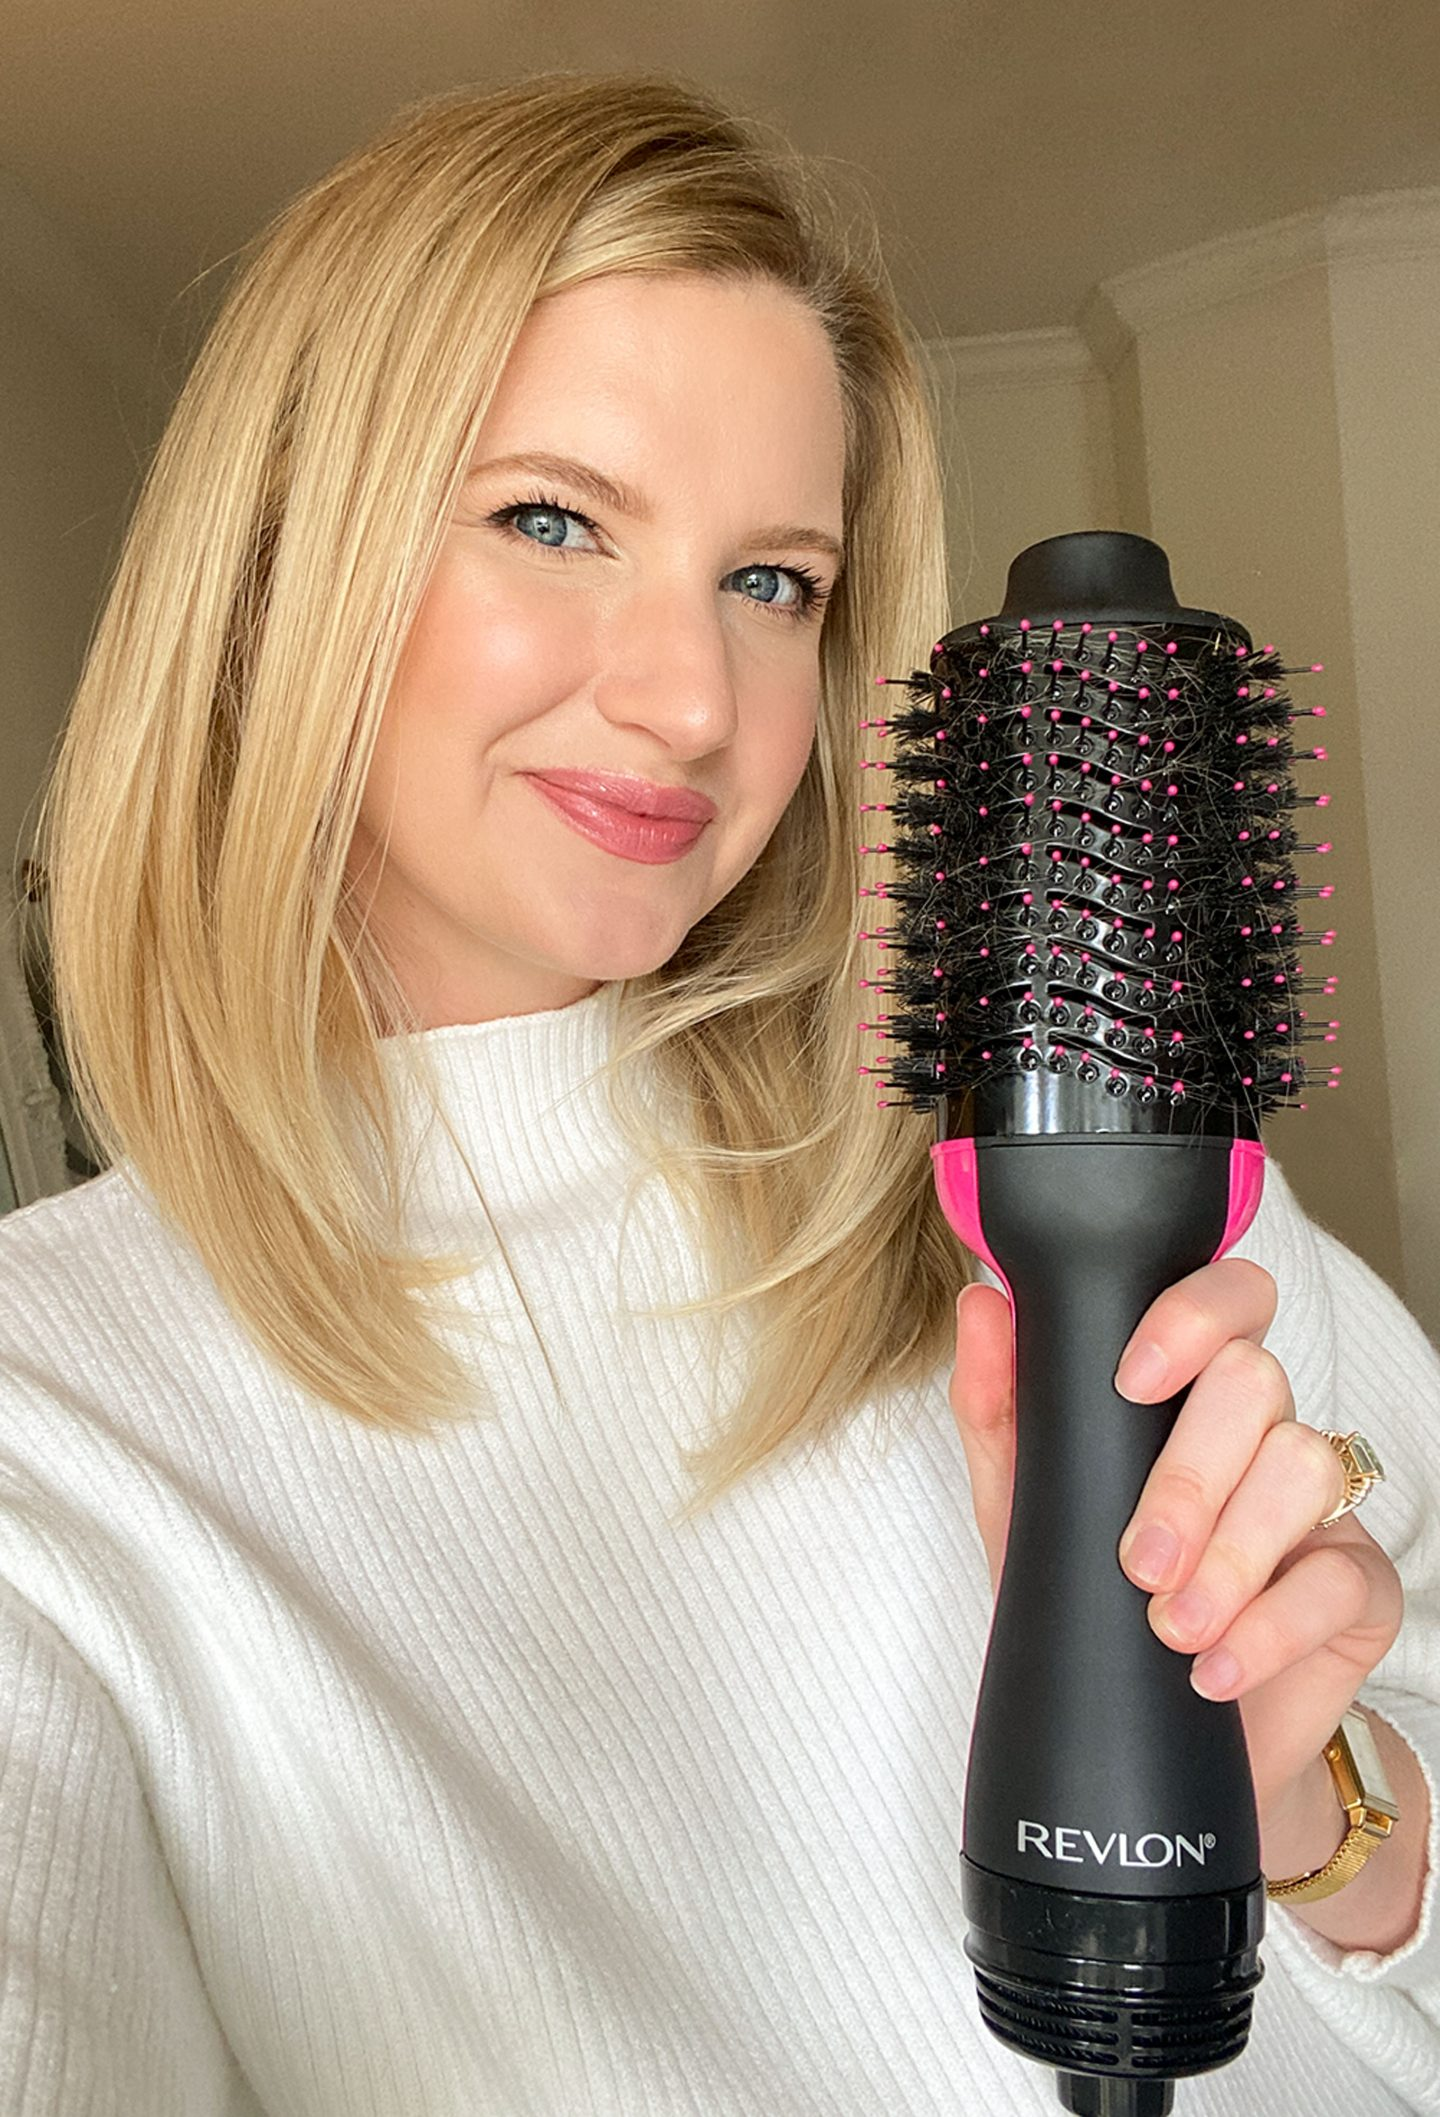 Ashley Brooke reviewing the new Revlon Salon One-stop hair dryer and volumizer